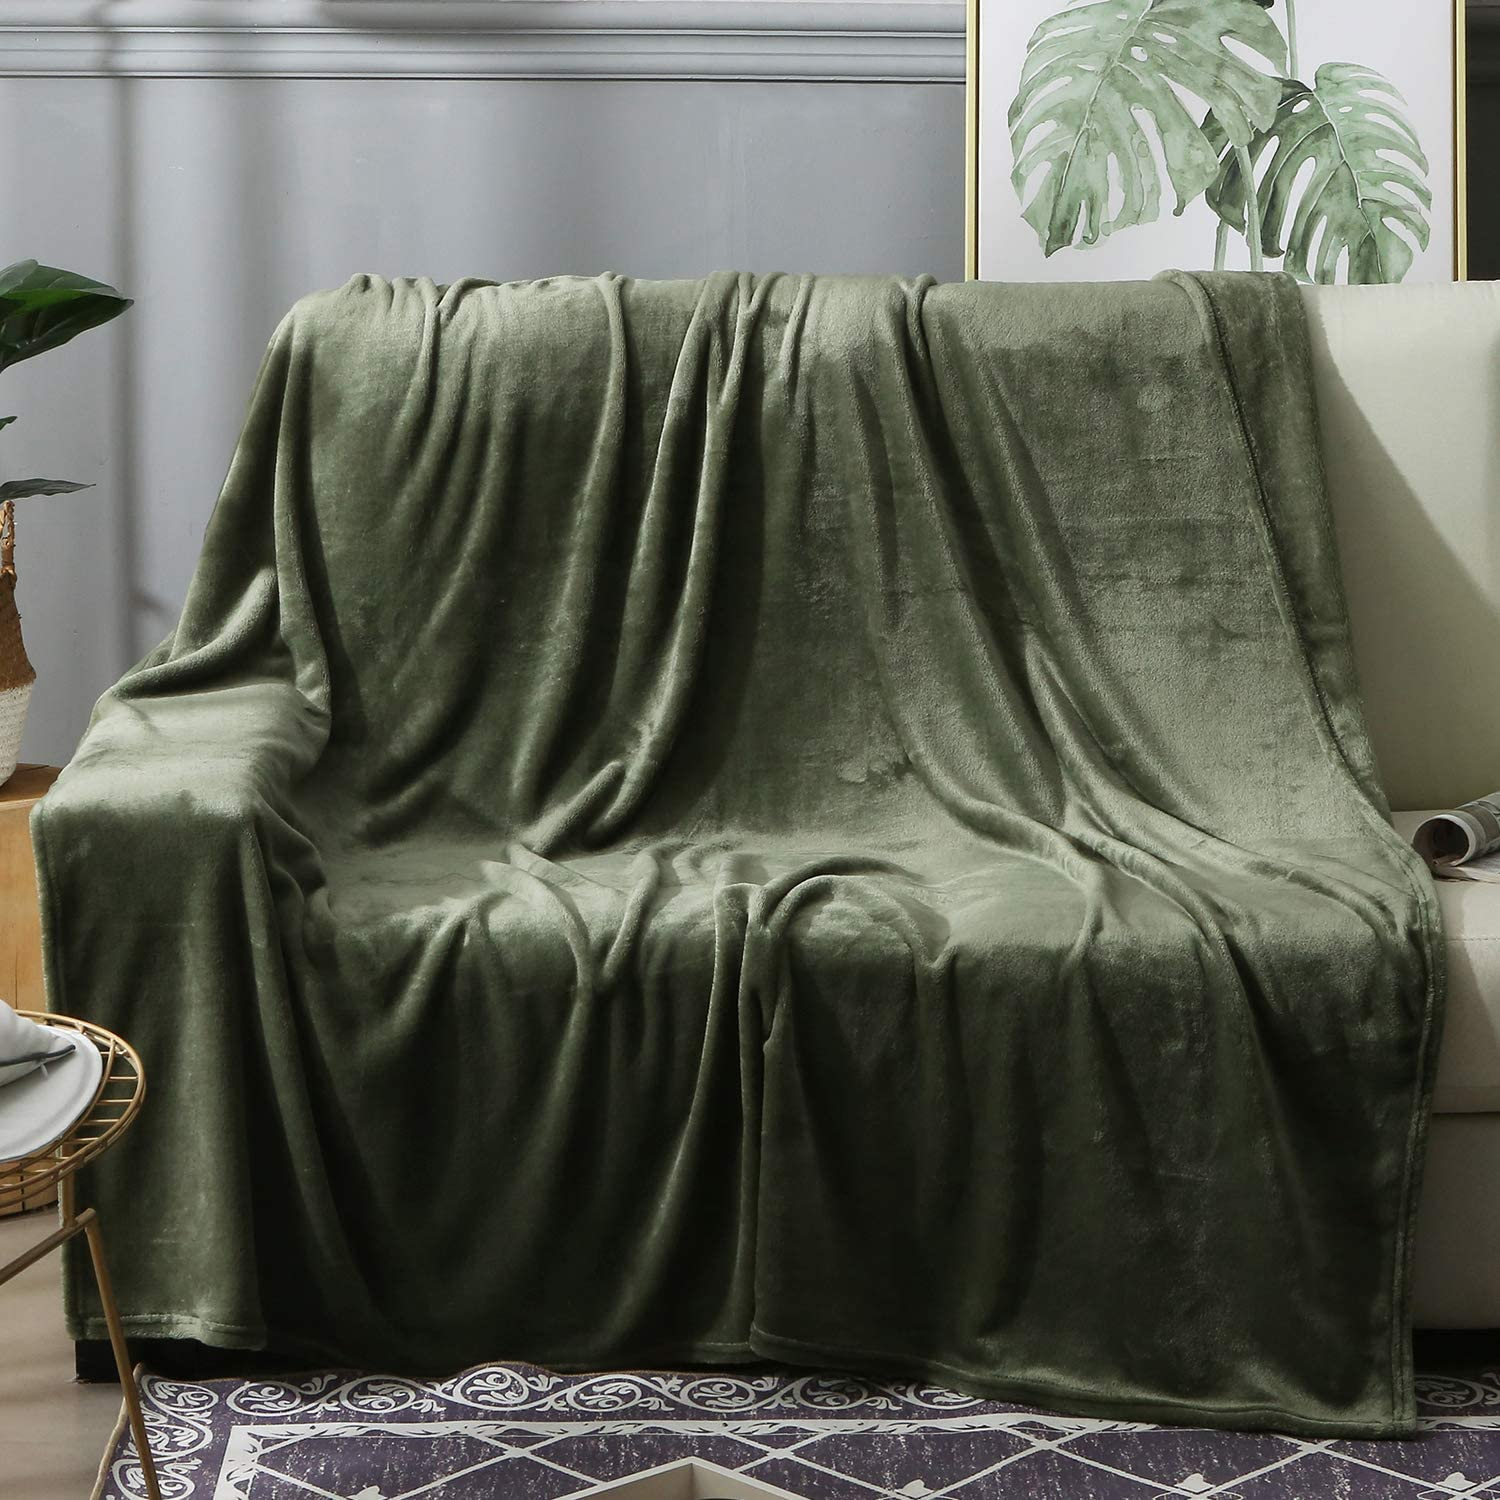 """BEAUTEX Fleece Throw Blanket for Couch Sofa or Bed Throw Size, Soft Fuzzy Plush Blanket, Luxury Flannel Lap Blanket, Super Cozy and Comfy for All Seasons (Olive Green, 50"""" x 60"""")"""